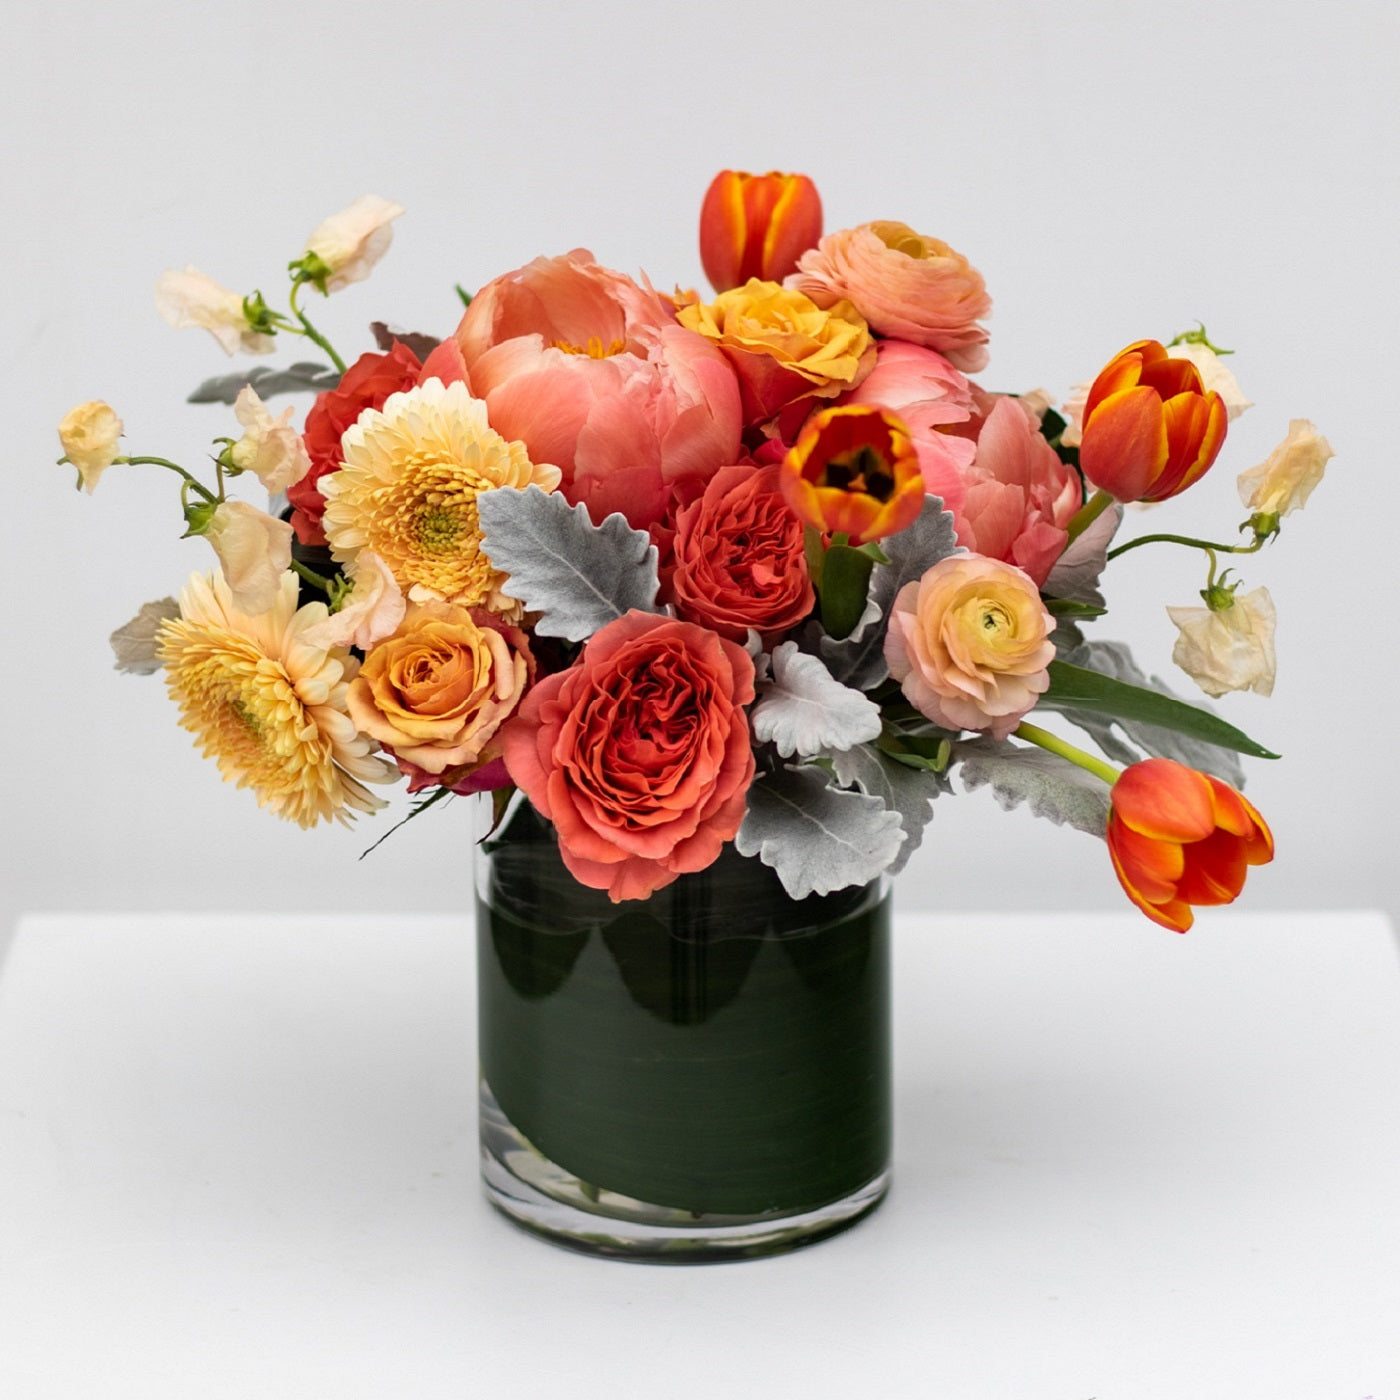 Mother's Day flower arrangement of peonies, roses, orange tulips, daisies and sweet peas